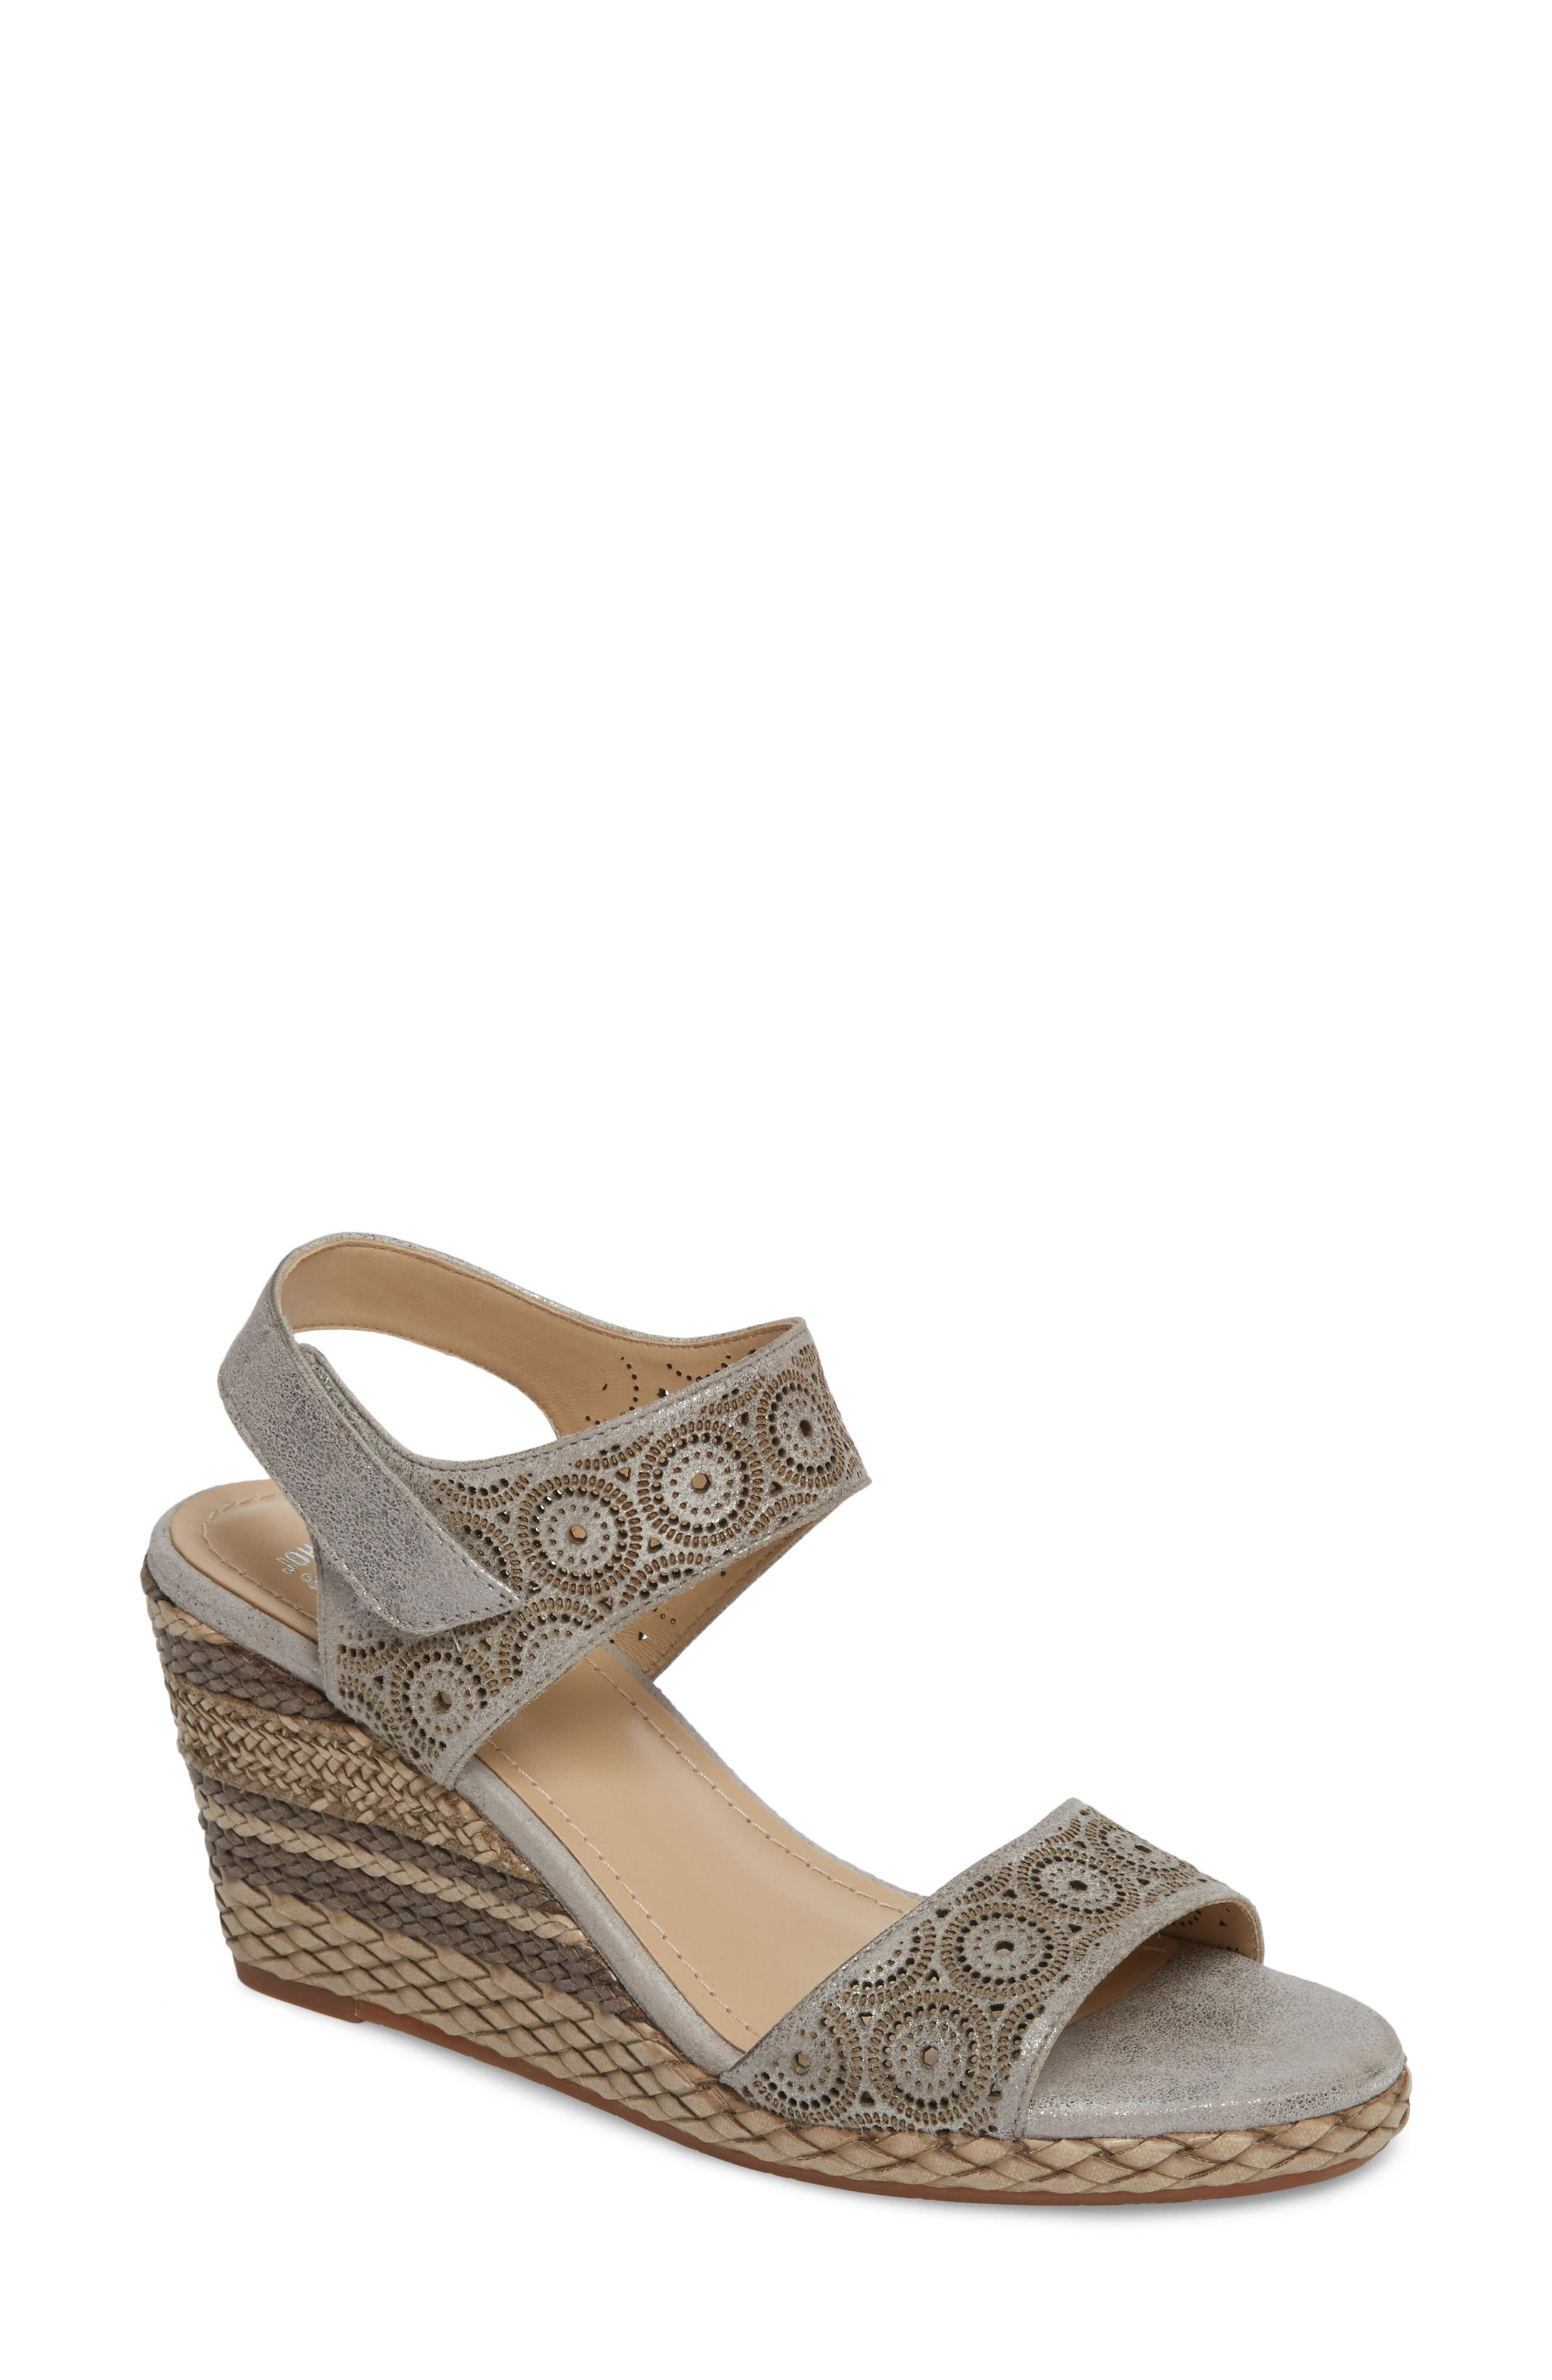 Georgiana Wedge Sandal,                         Main,                         color, Pewter Leather